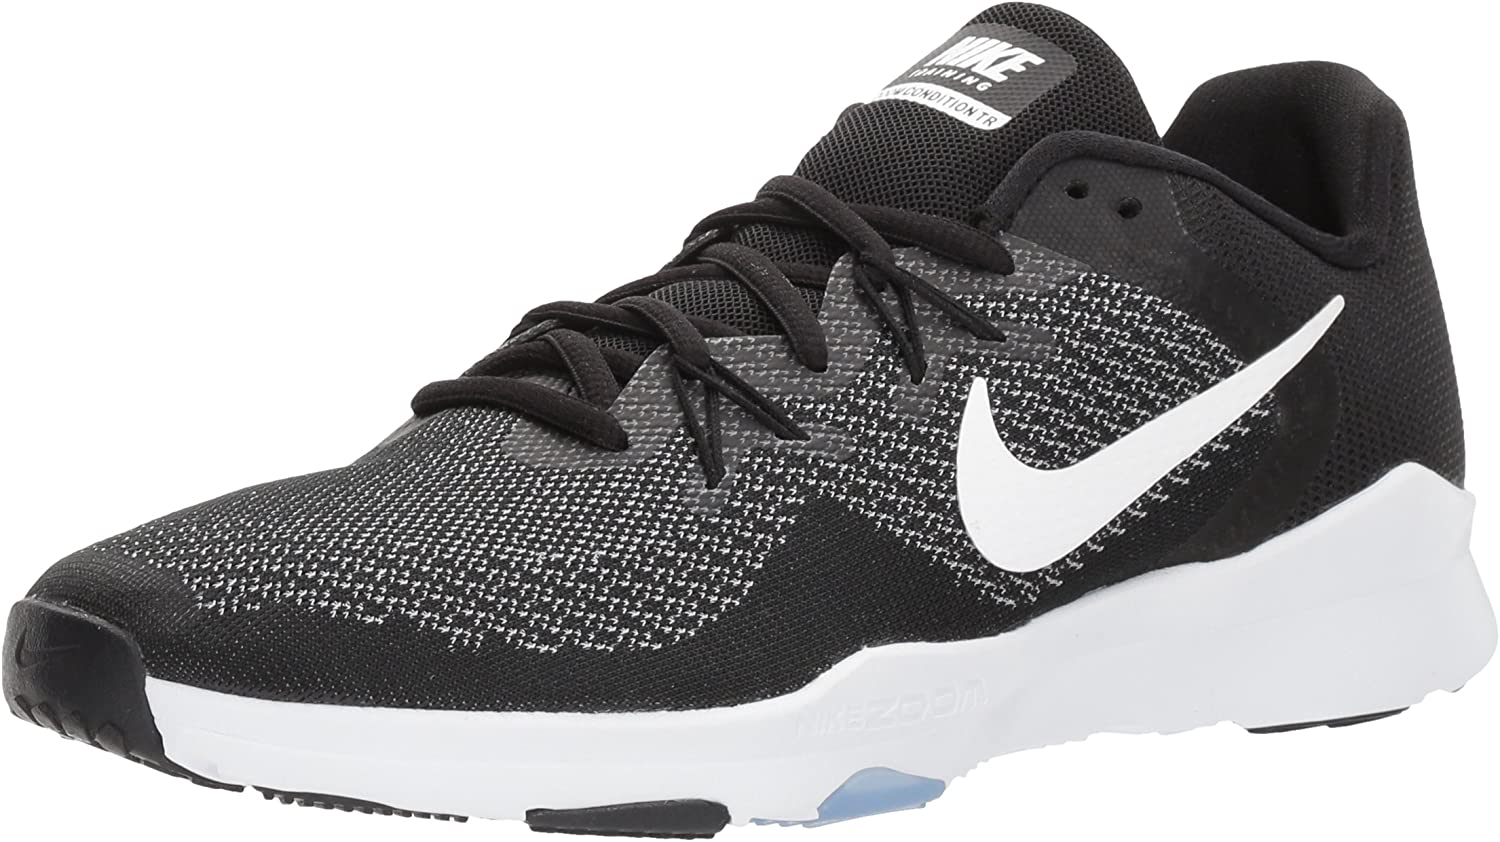 Nike Women's Zoom Condition Trainer 2 Cross